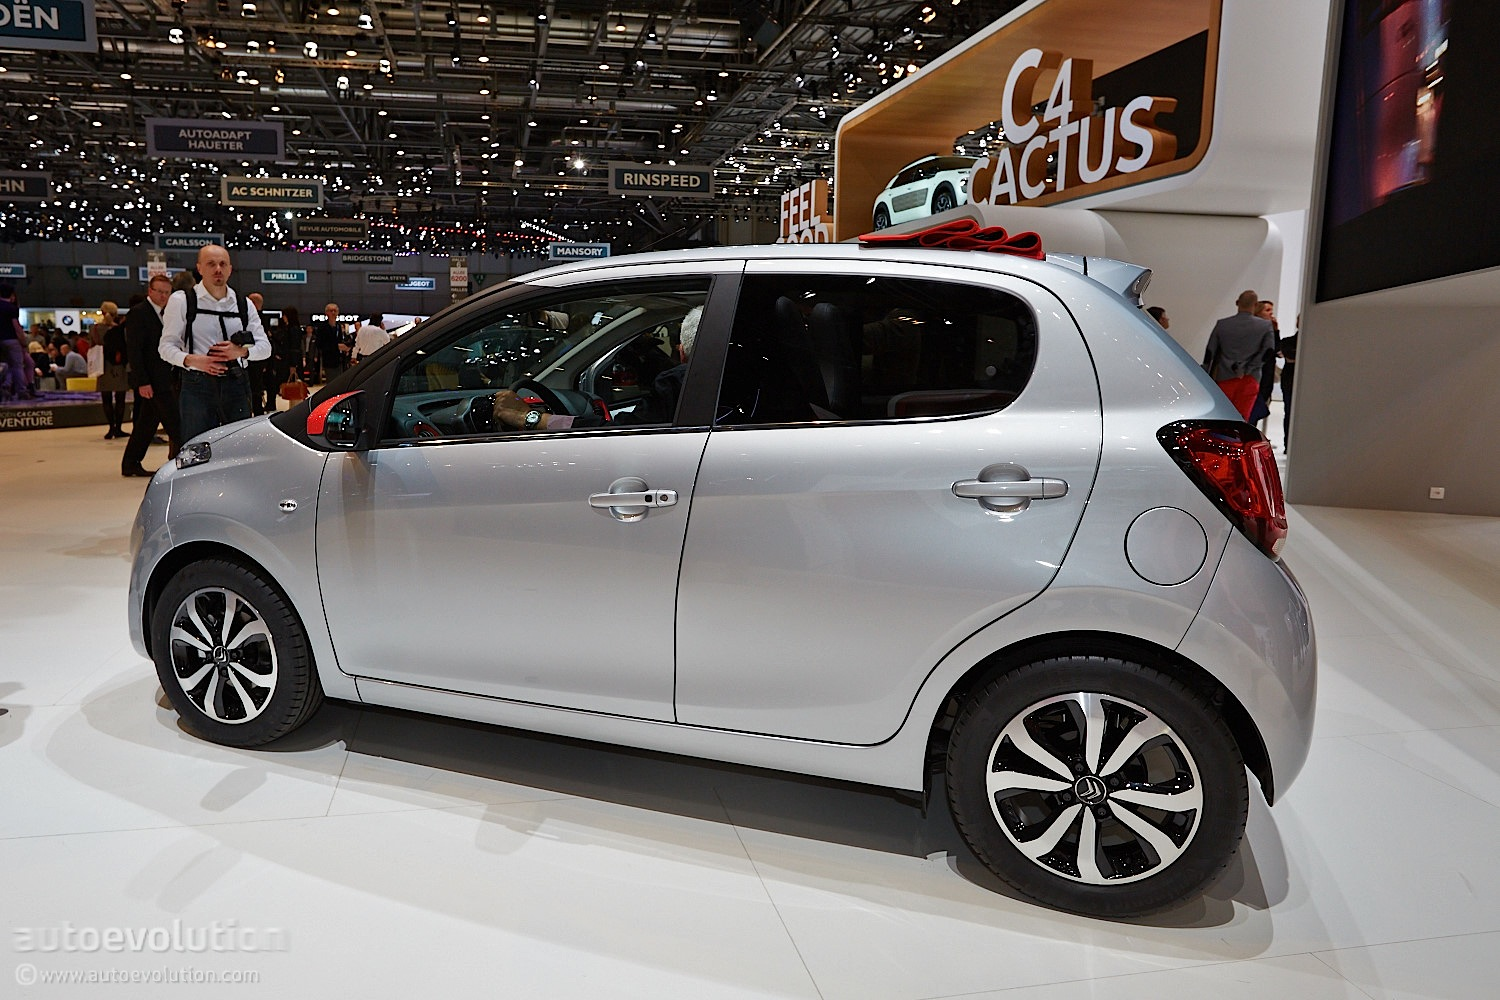 Kia Of Union City >> Citroen C1 Marks Return to Form for Small French Cars ...